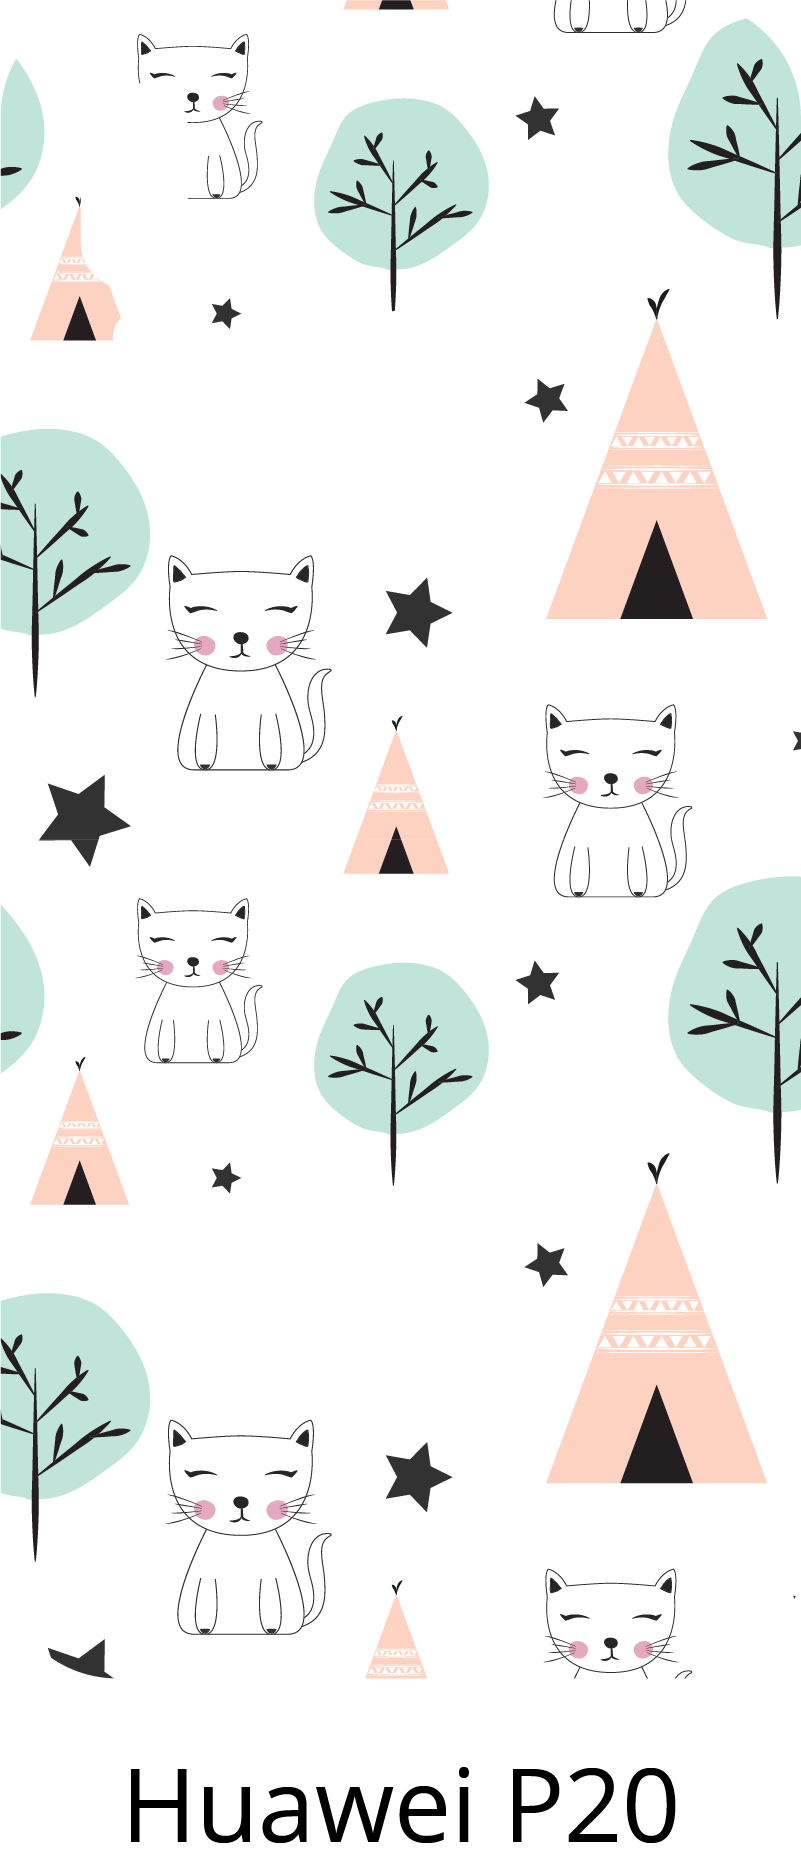 TenStickers. Nordic style (huawei)stiacker. Nordic style pattern huawei sticker for lovers of this type of design. Choose it in the best suitable size. Easy to apply.